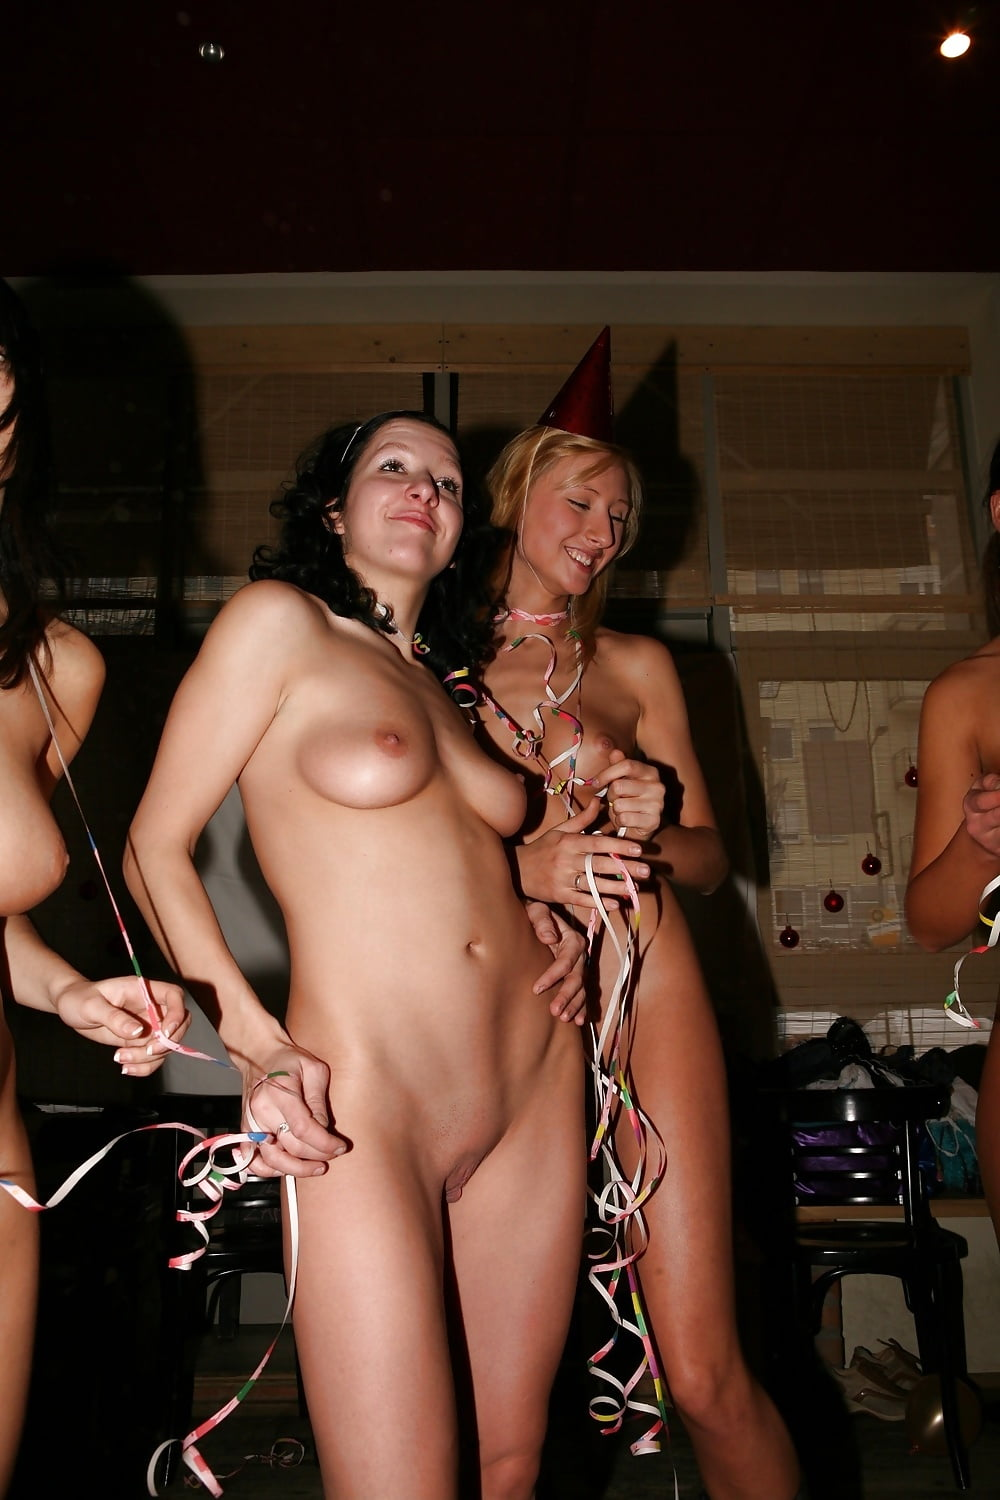 nude-party-gals